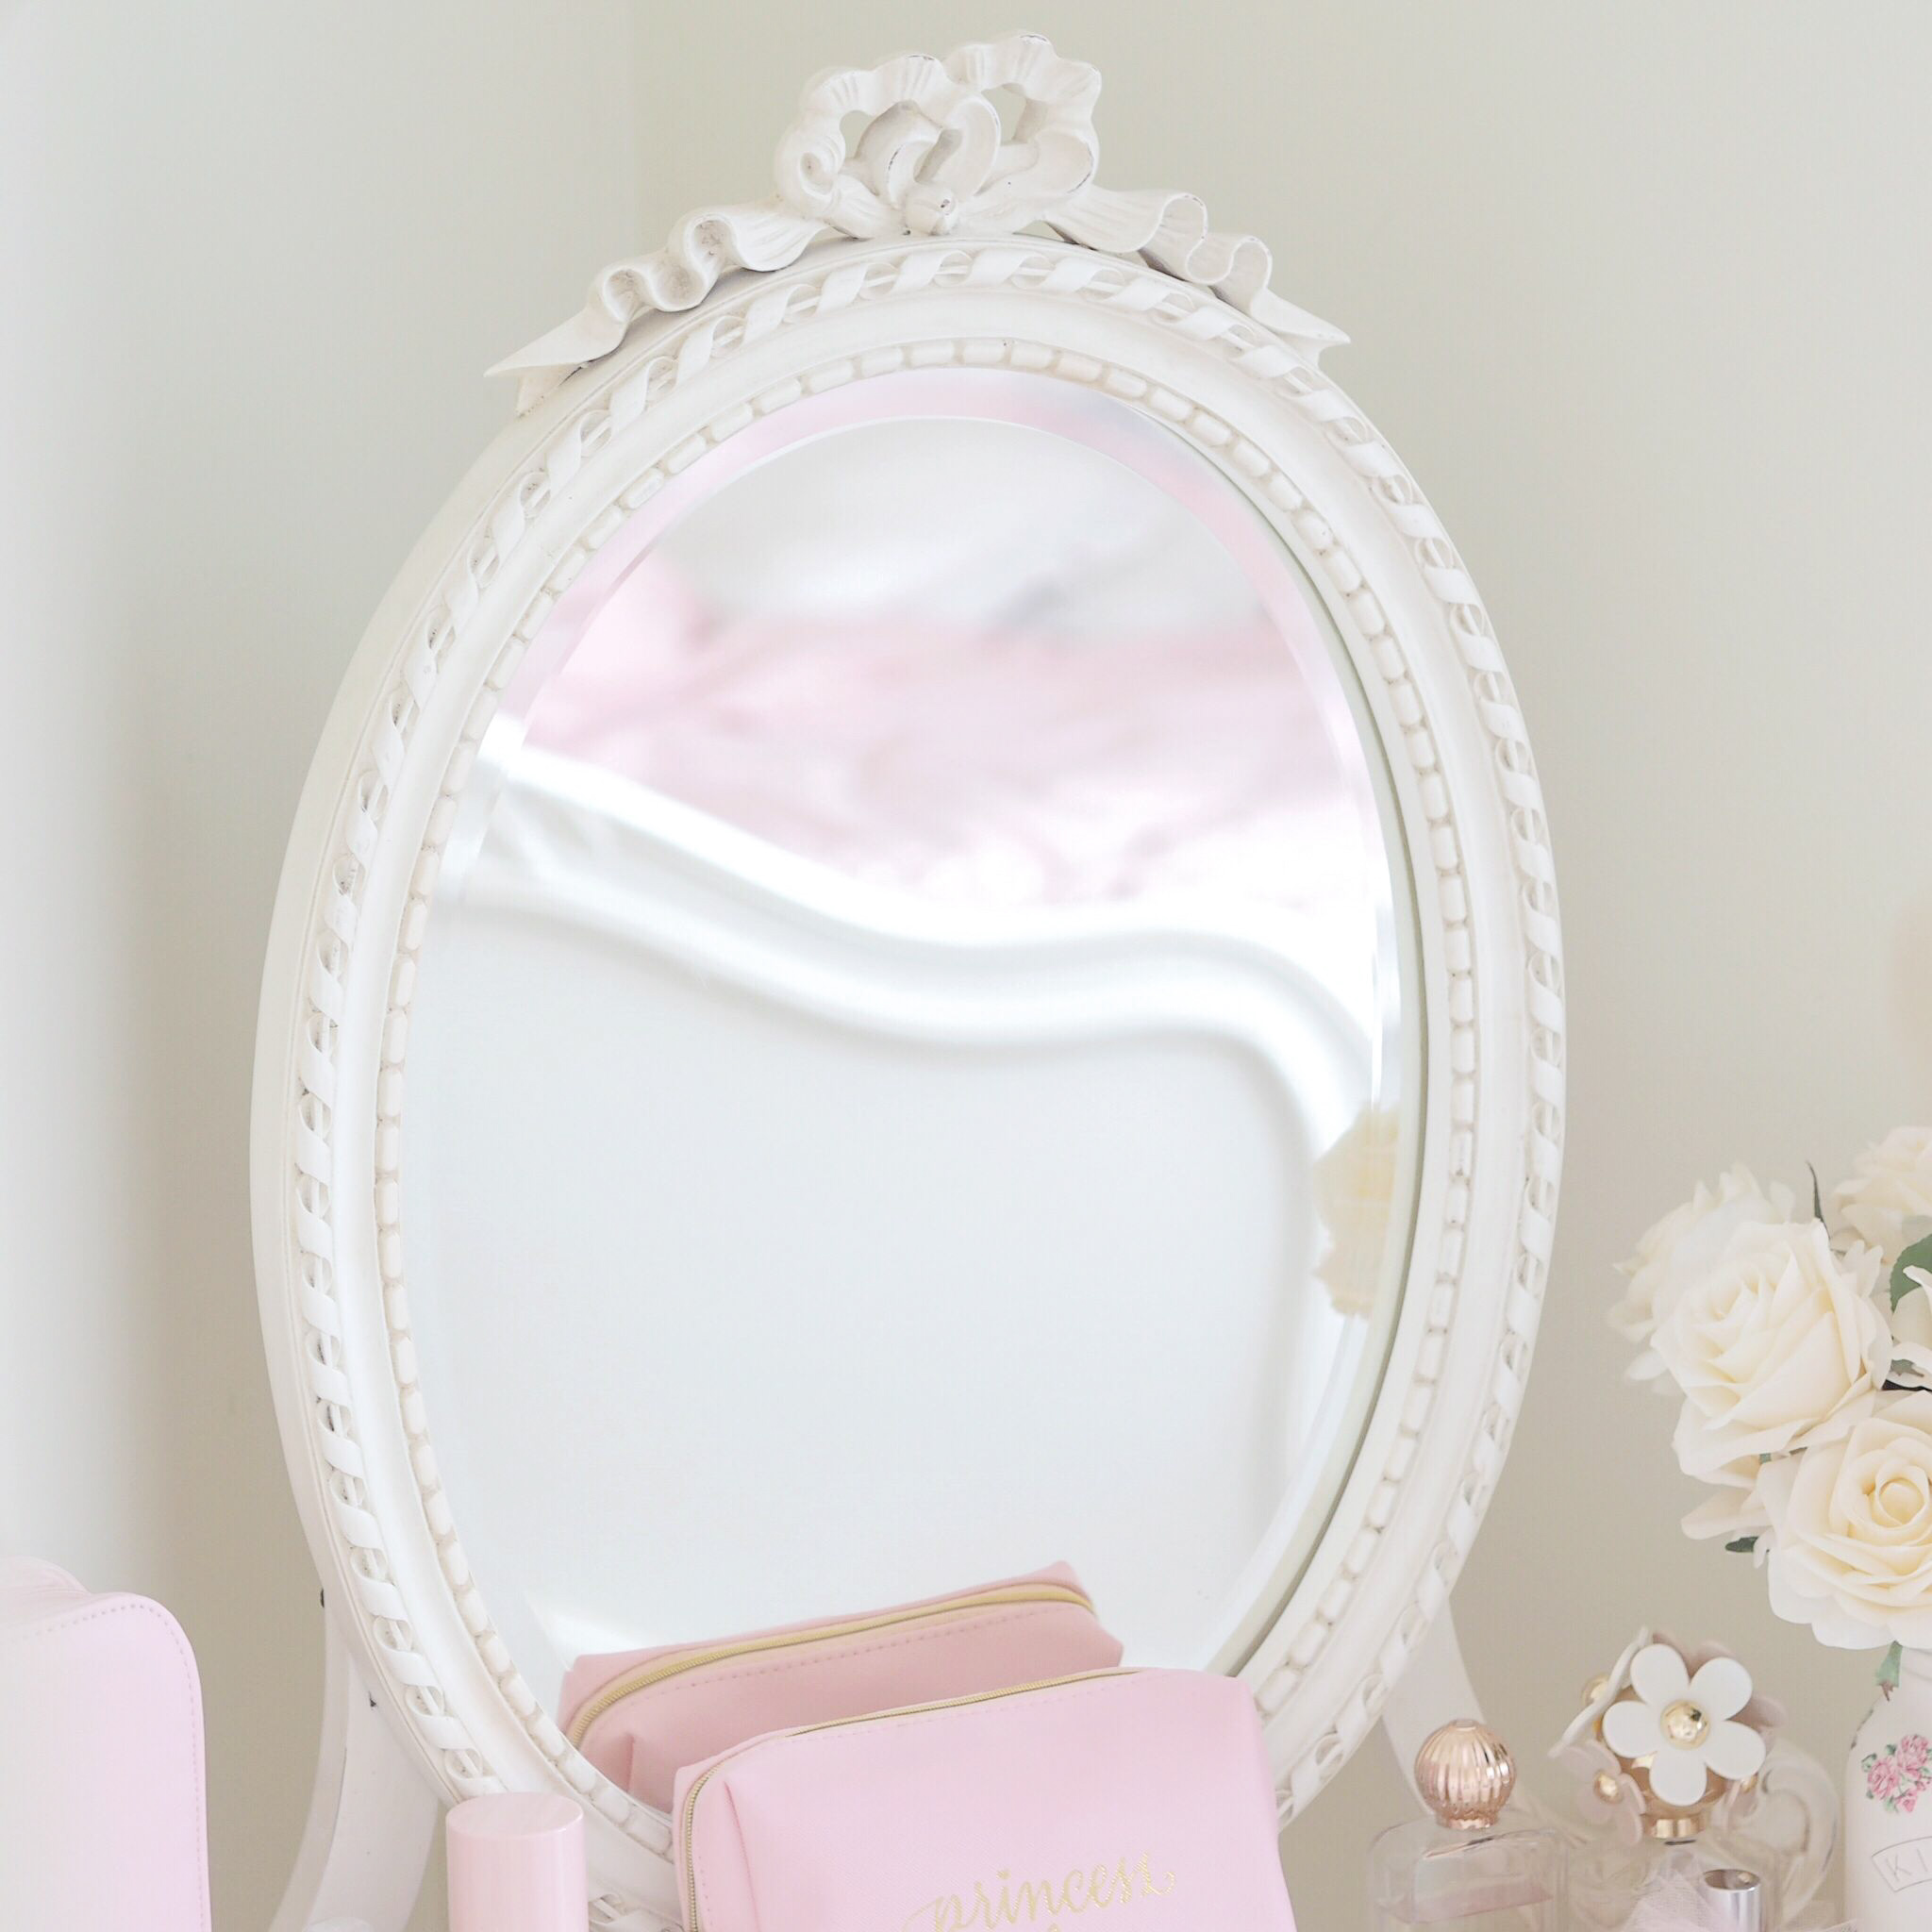 Styling My Princess Dressing Table, Girly Bedroom, Vanity, Makeup Storage | Love Catherine